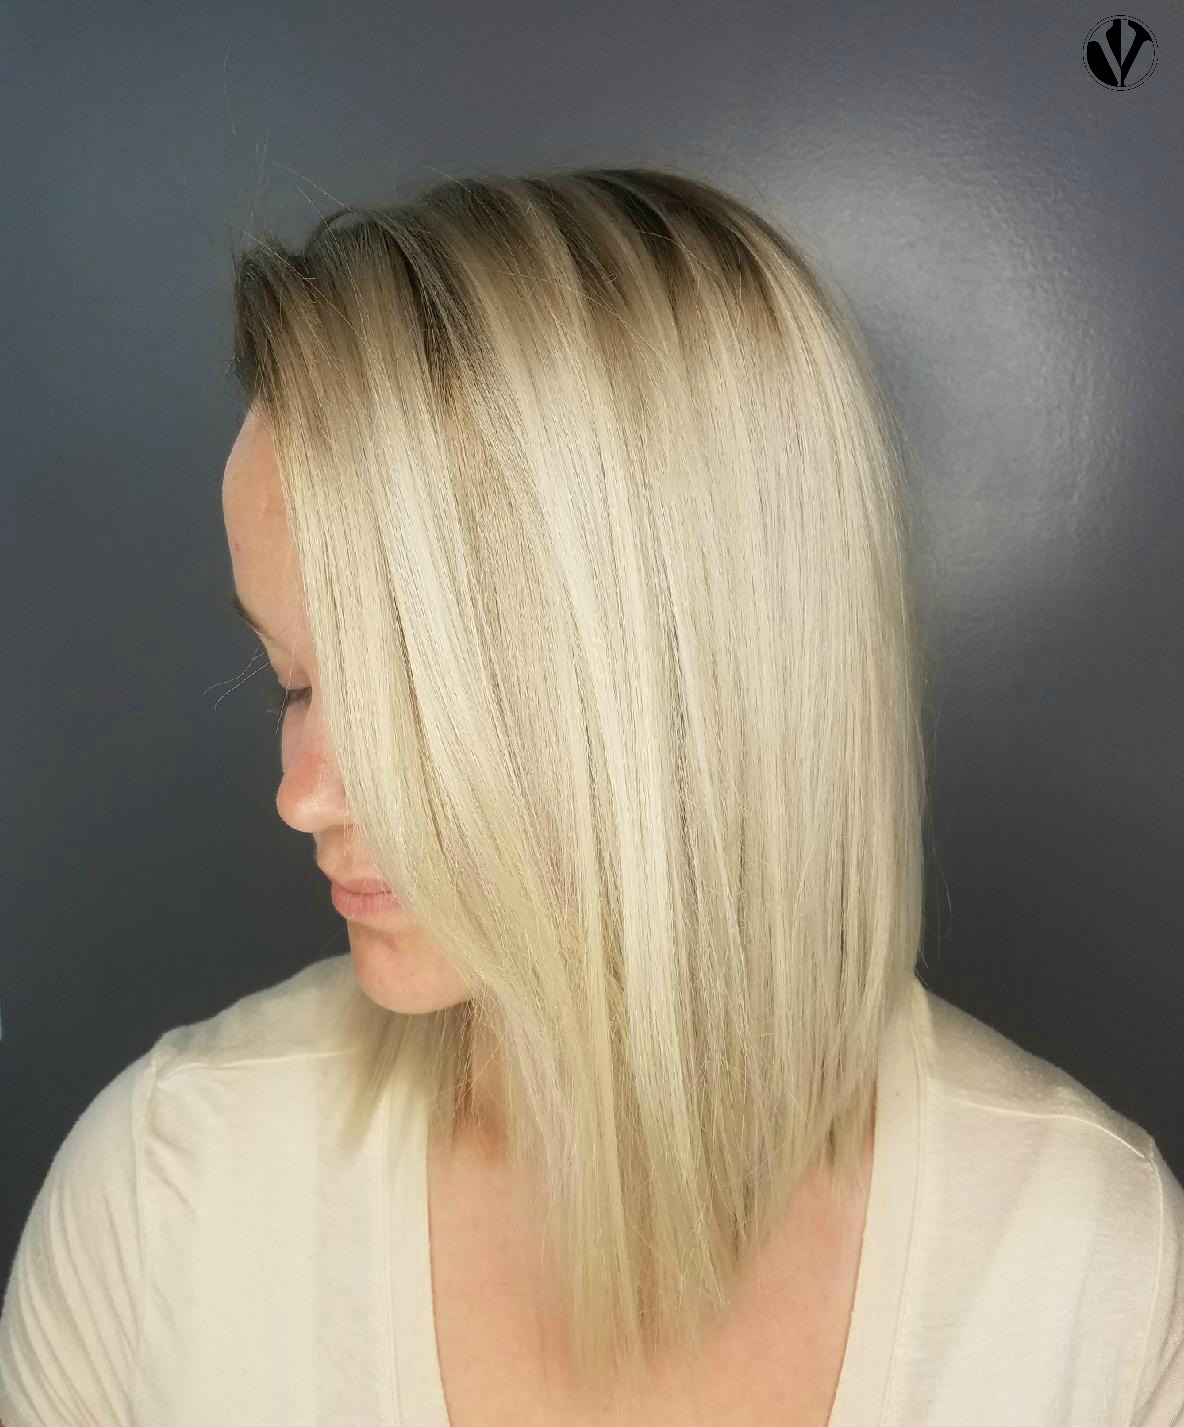 After the Toner - A toner helped to create a more even blonde while removing the brassy tones from the root